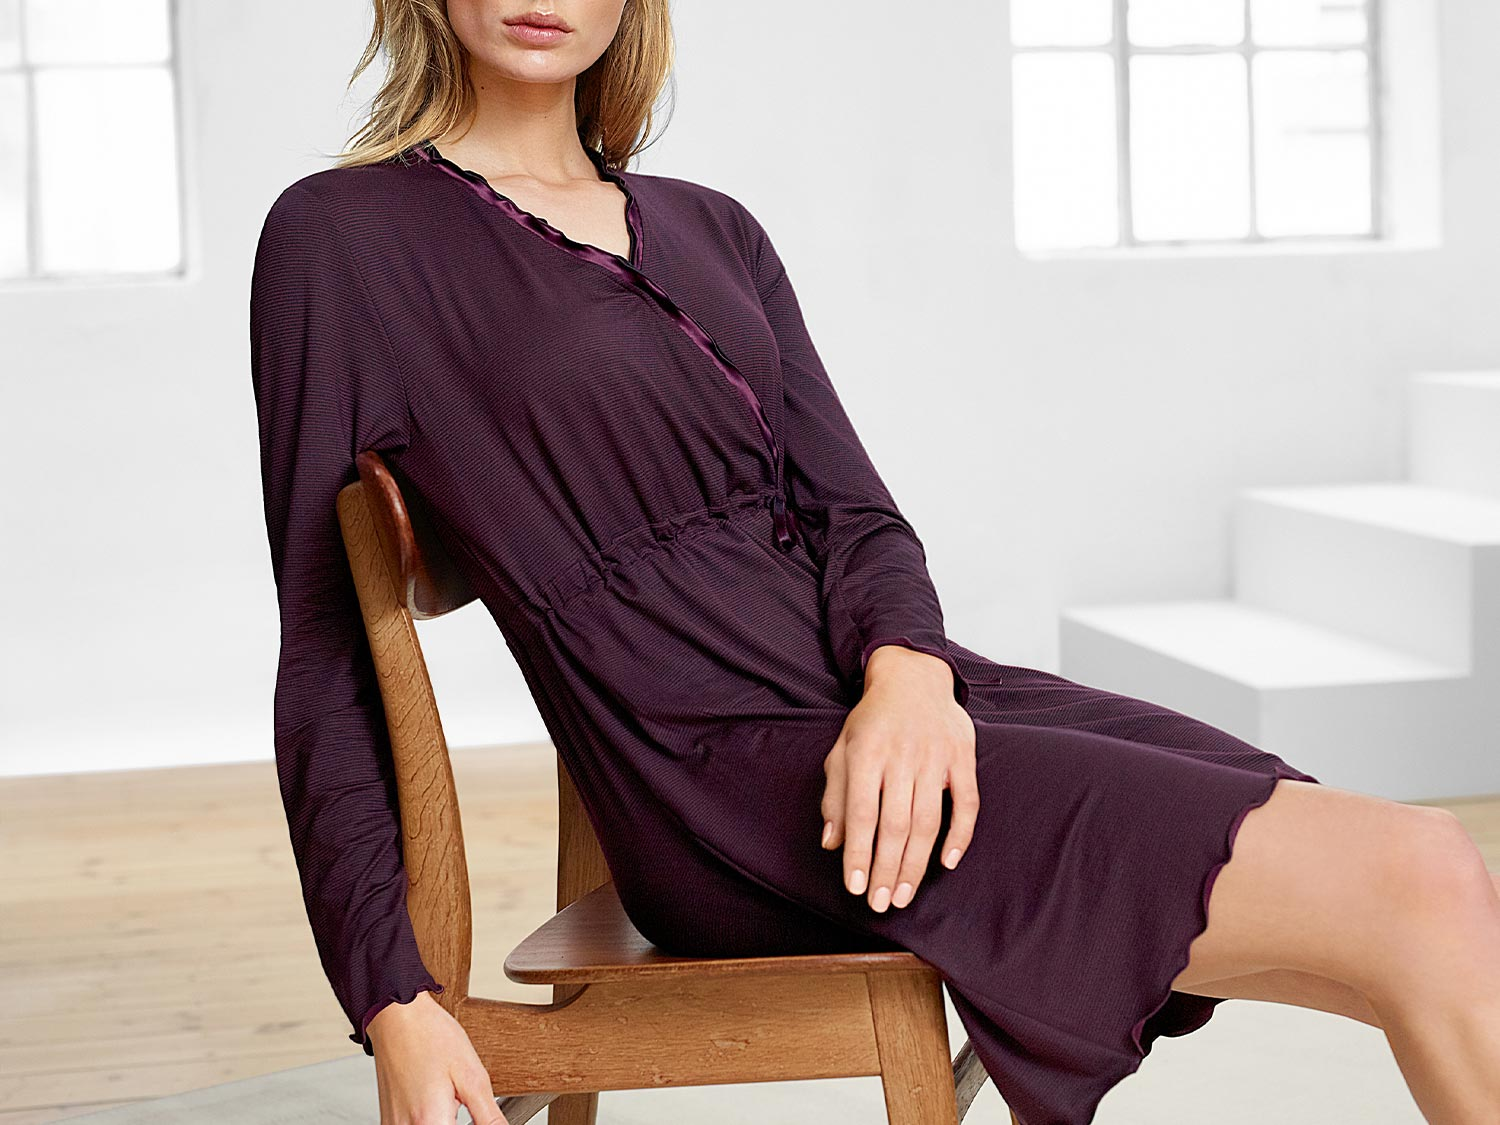 model photo: woman in a burgundy nightshirt with long sleeves | mey®